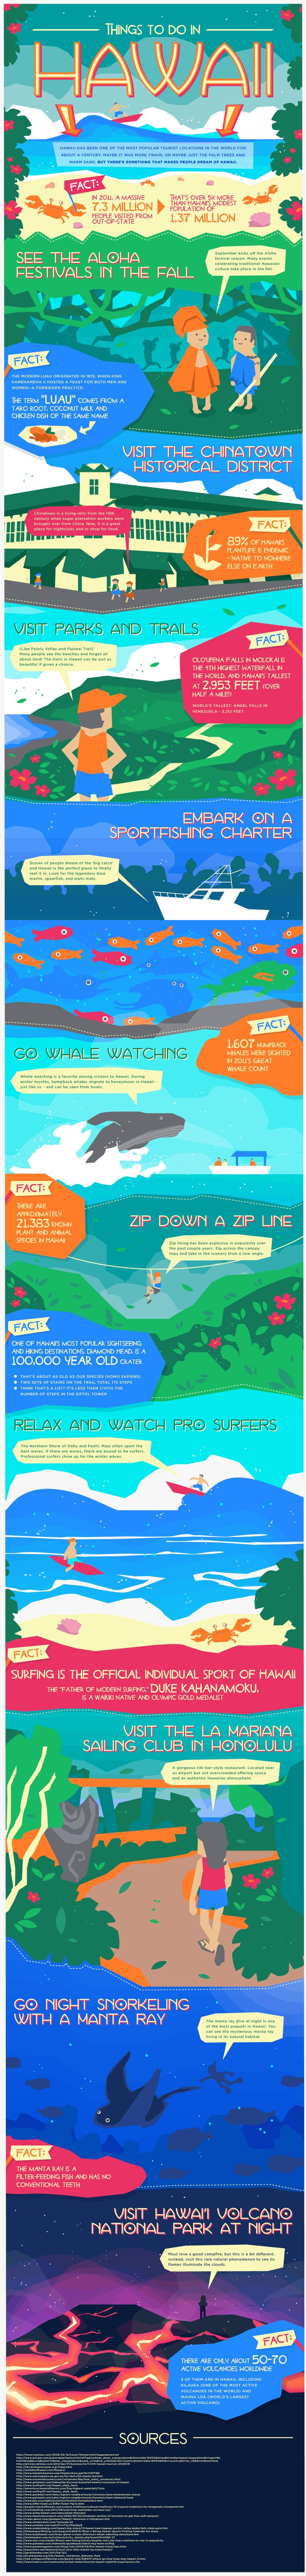 Things To Do In Hawaii - Infographic